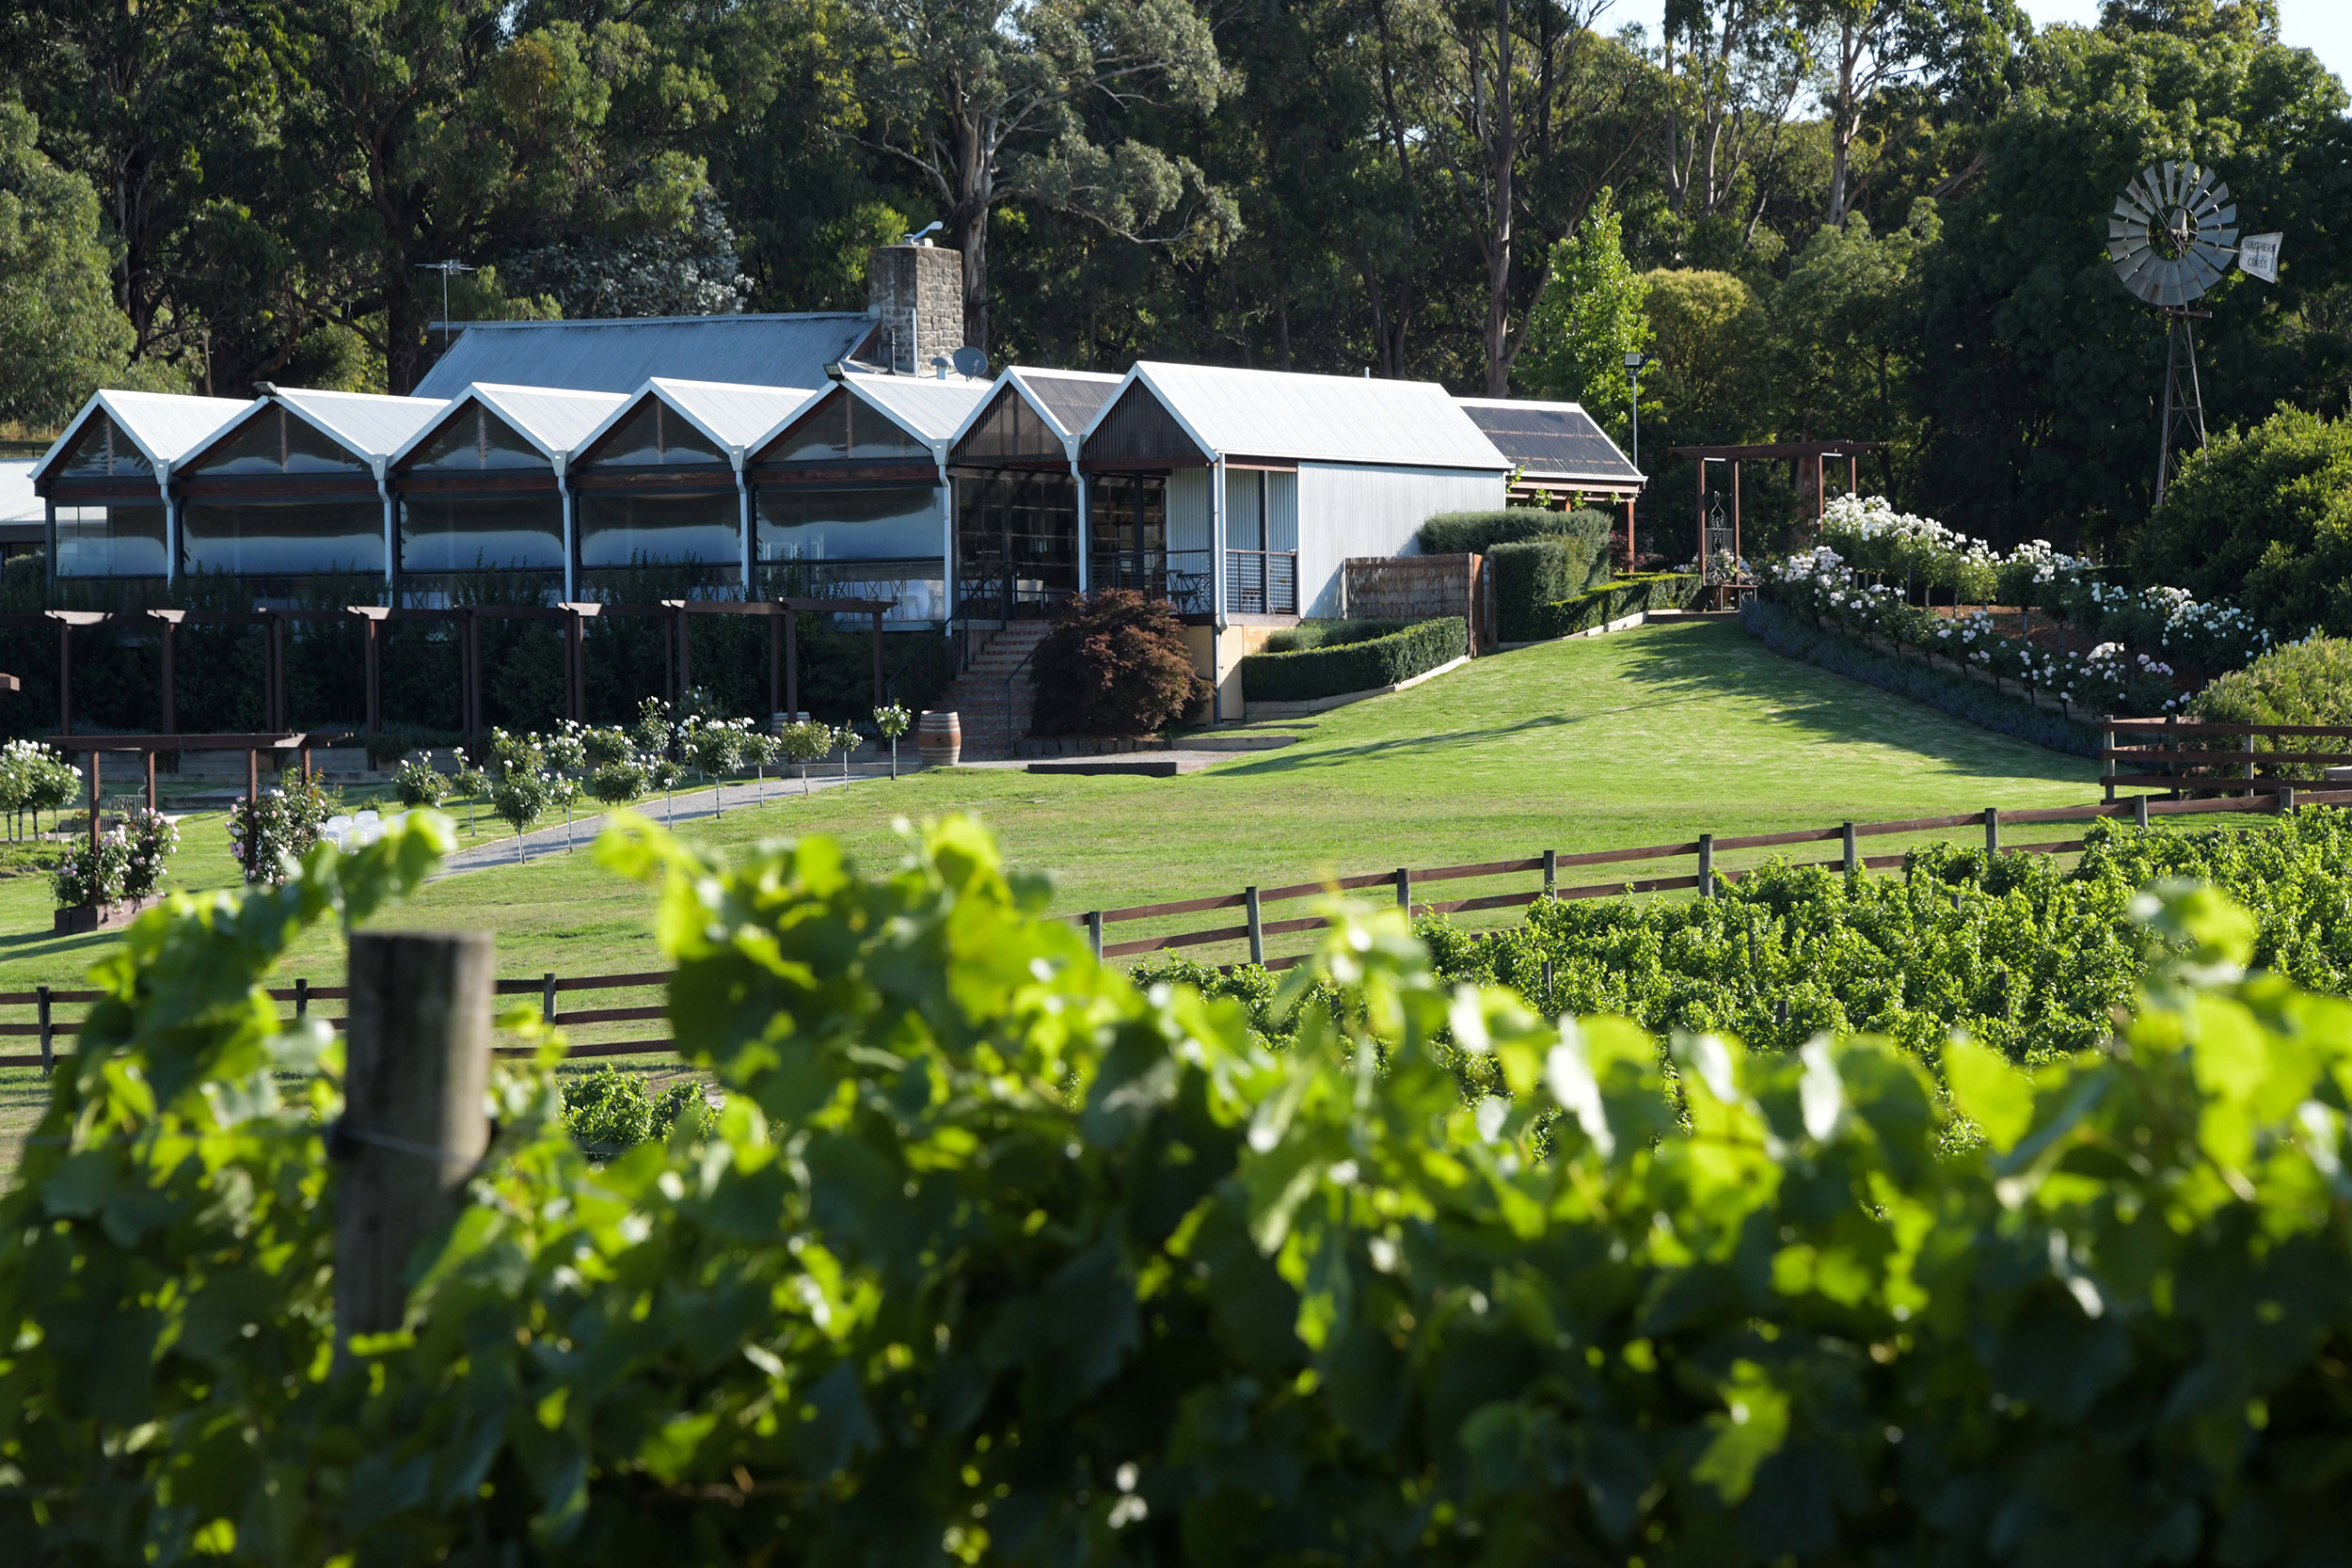 Yarra Ranges Estate Wedding Venue situated in the Yarra Valley